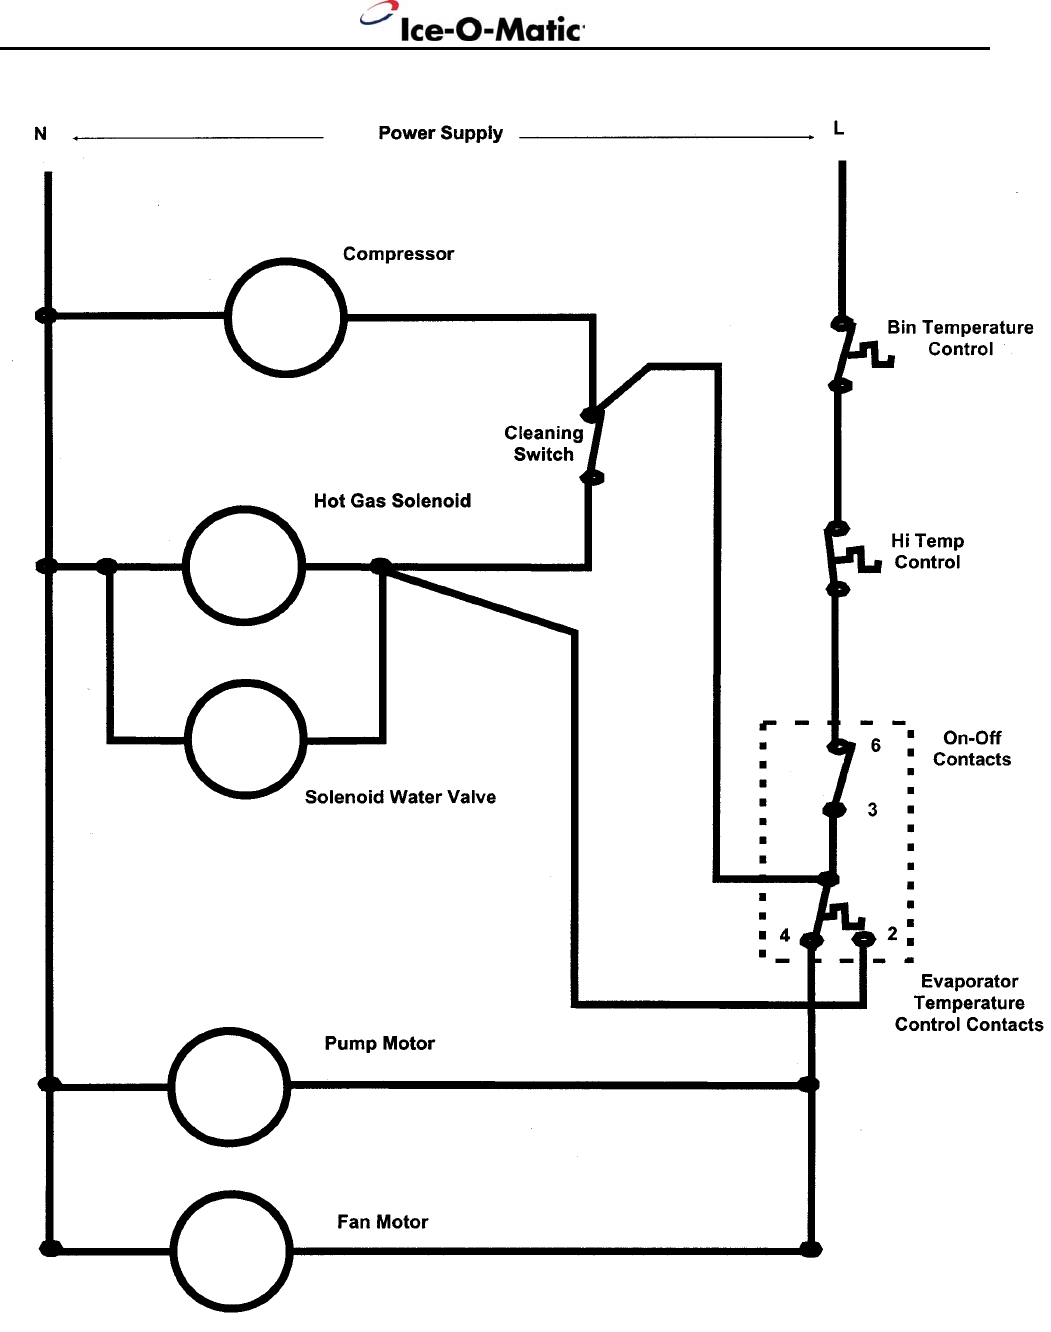 Ice maker electrical diagram basic guide wiring diagram ice maker electrical diagram images gallery page 19 of ice o matic ice maker iceu060 user guide manualsonline com rh kitchen manualsonline cheapraybanclubmaster Image collections